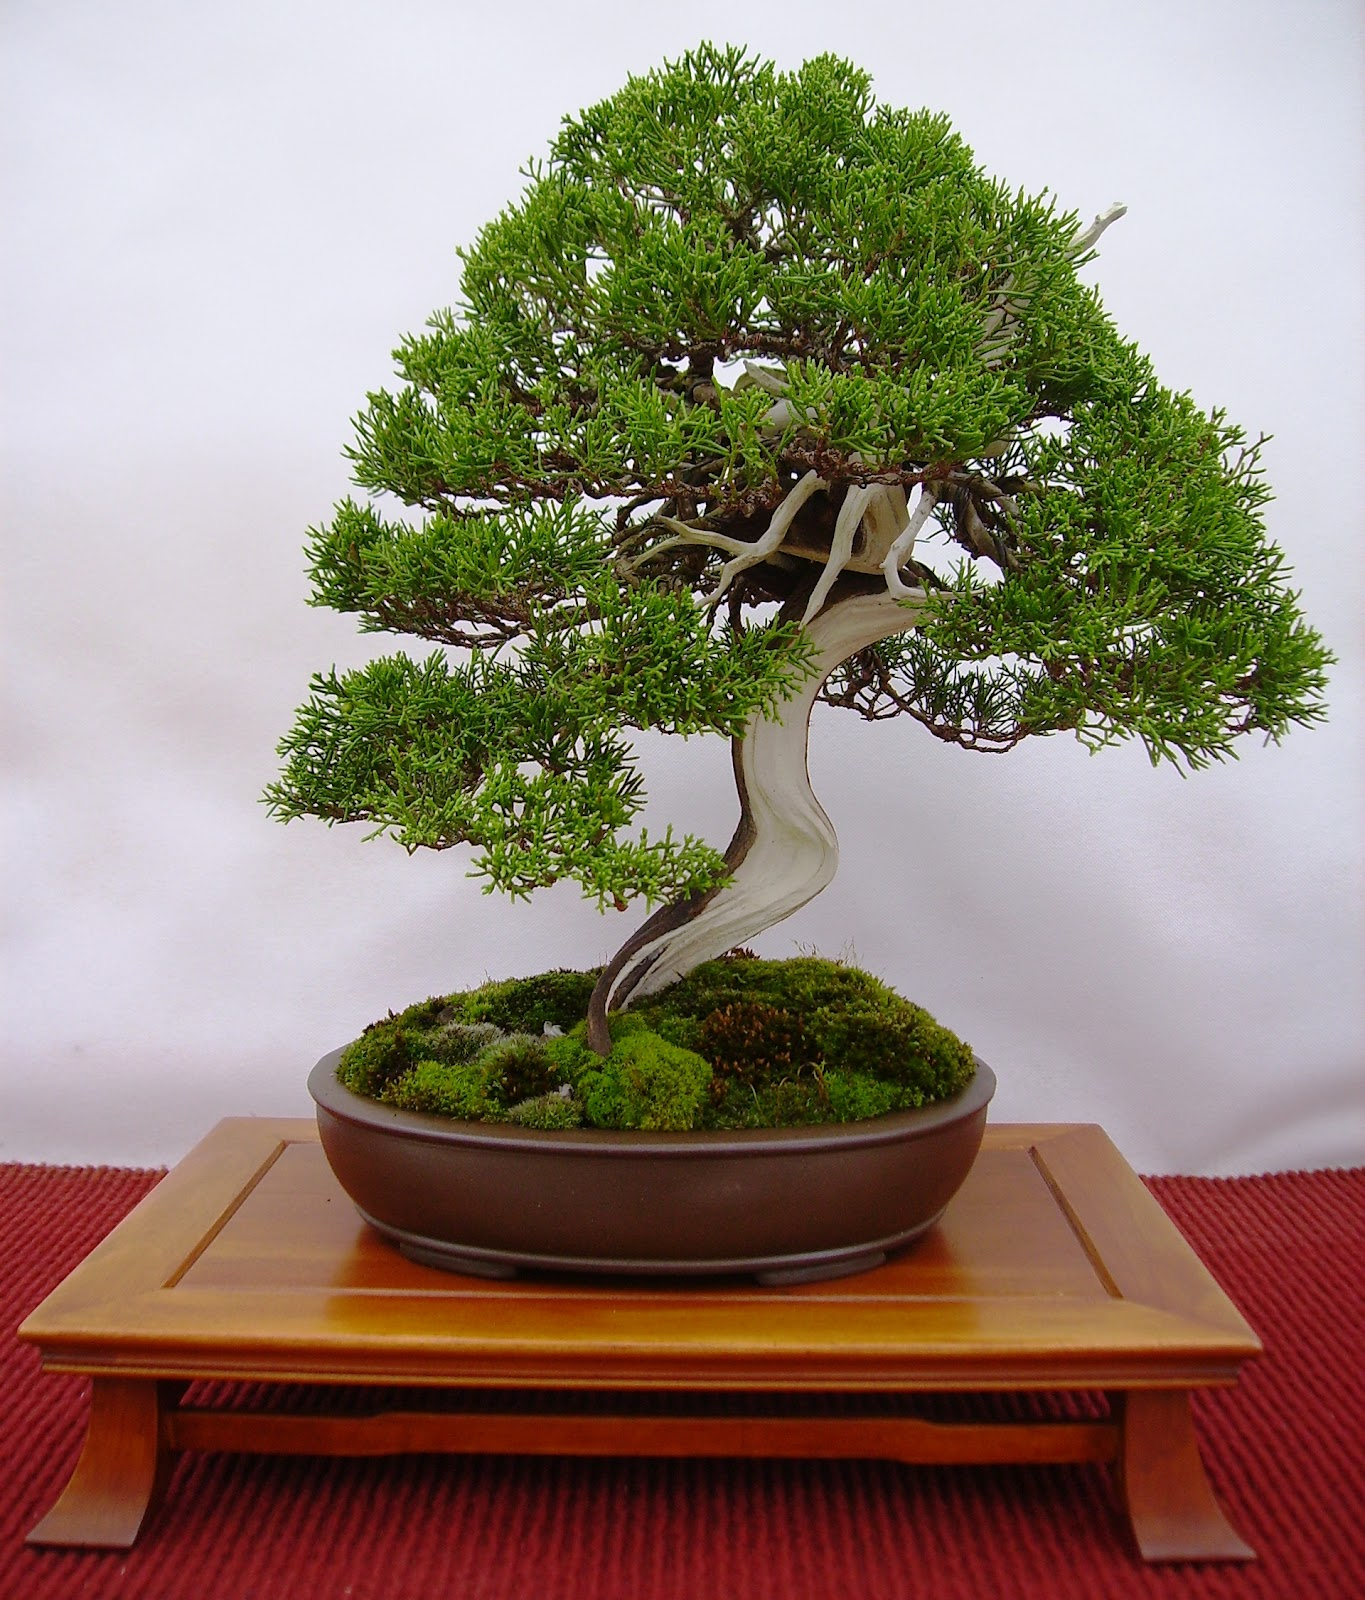 Bespoke Bonsai Stands More Trees From The BSA Show At Willowbog